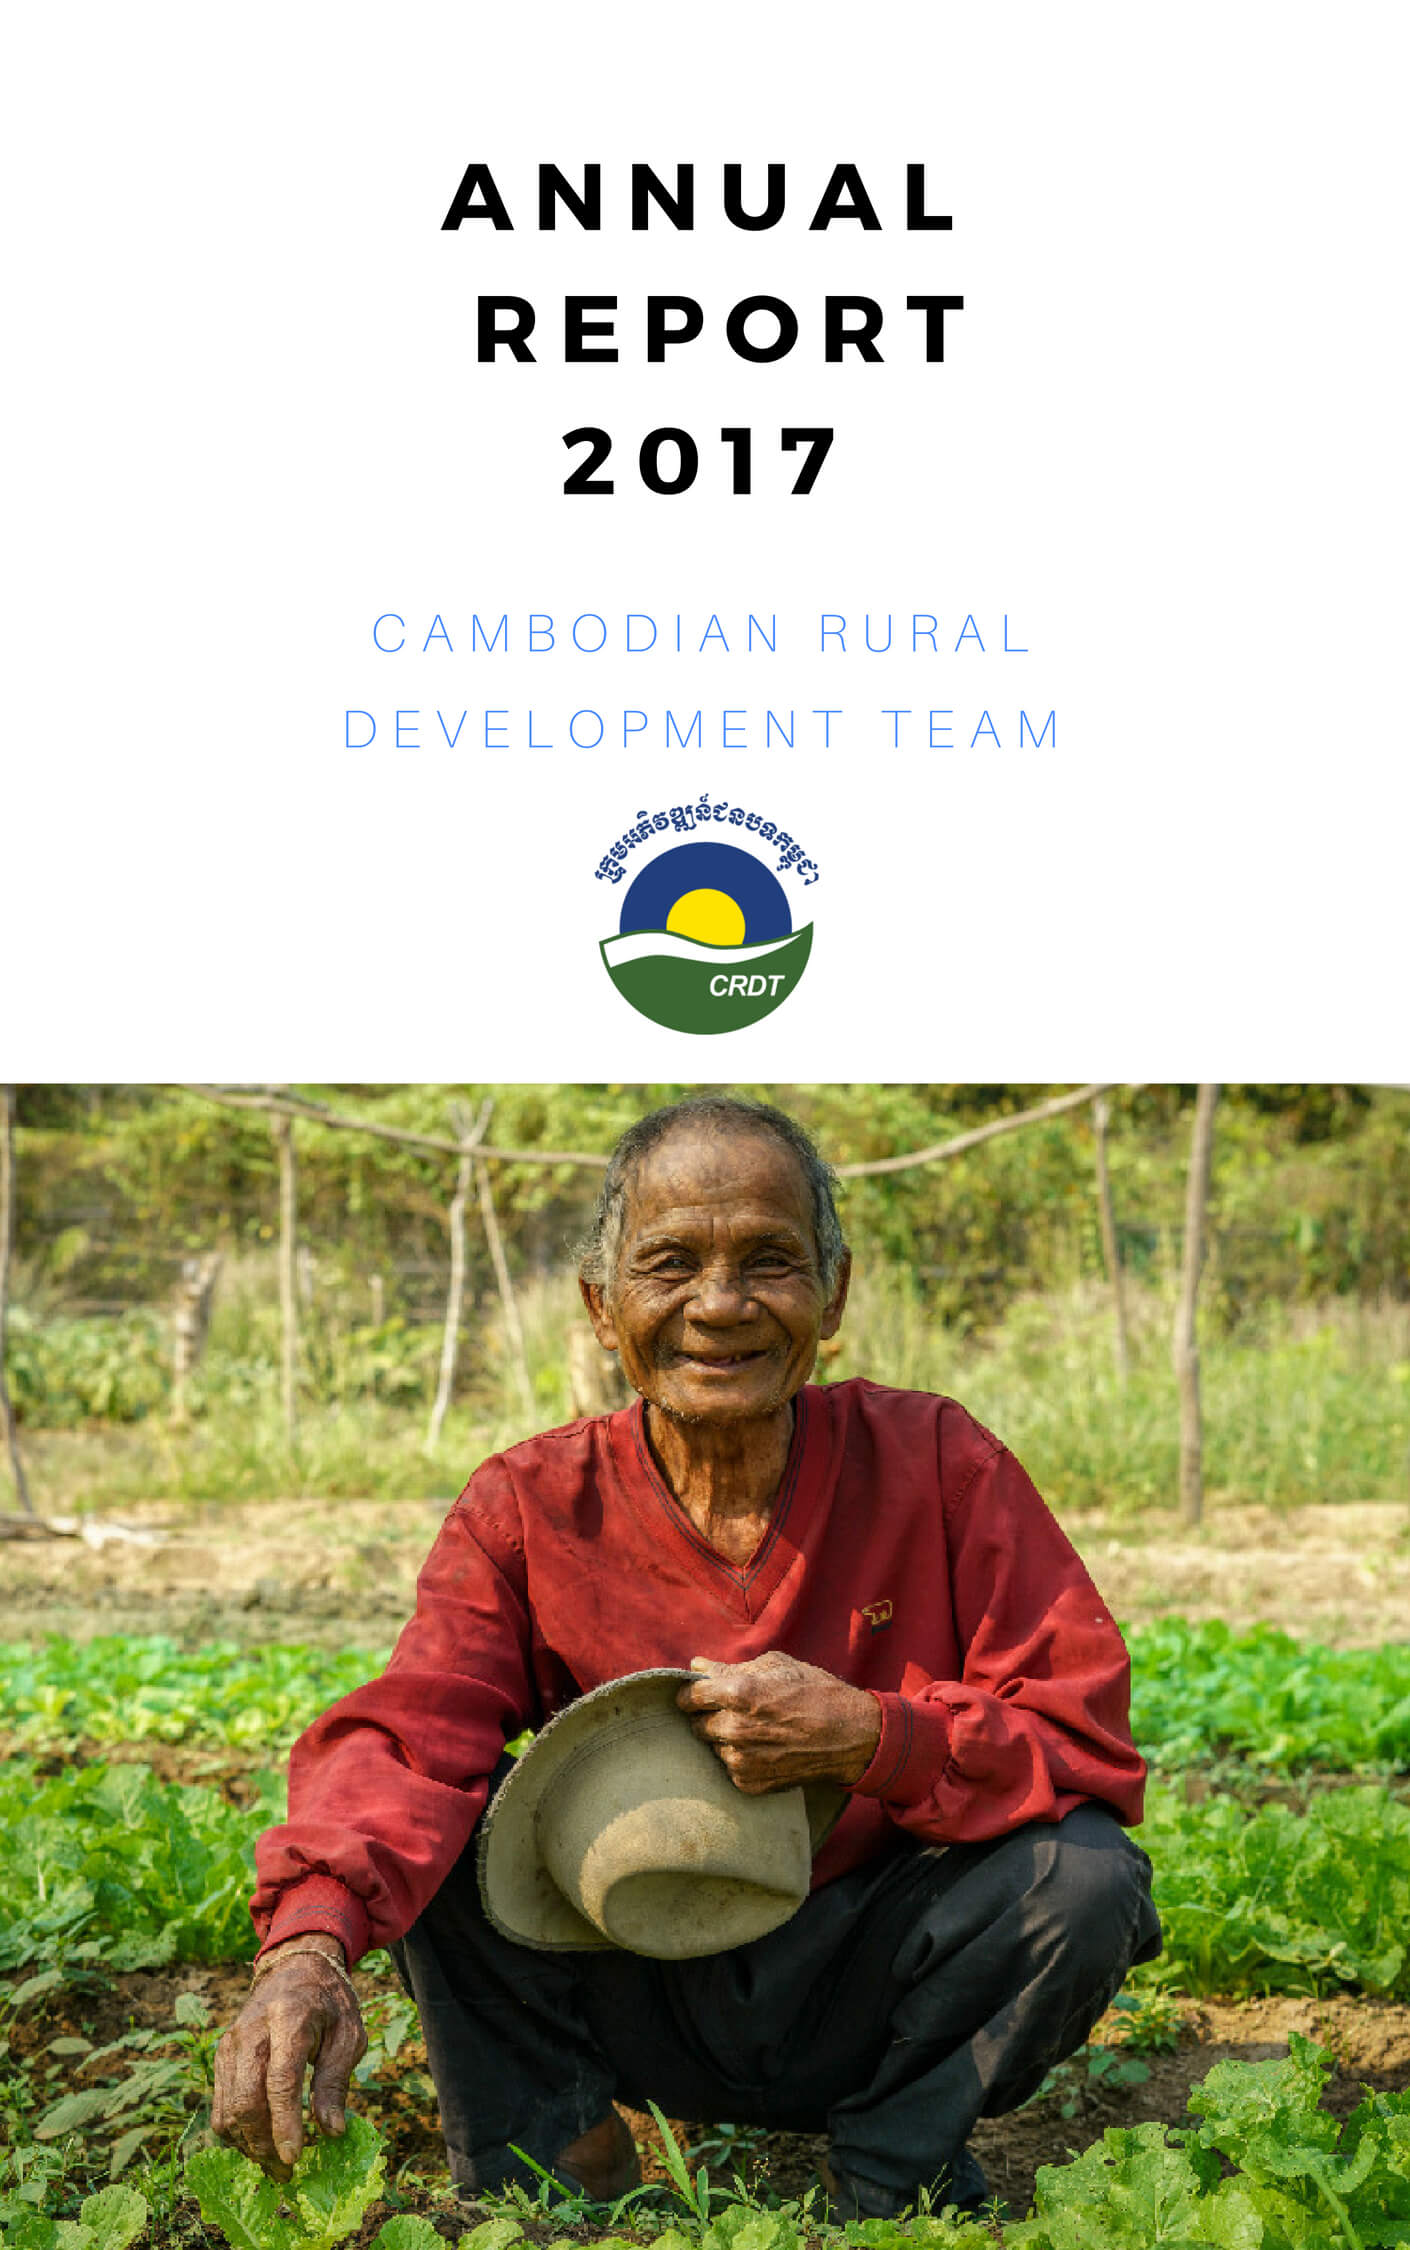 Cambodian Rural Development Team Annual Report- Cover for Website 1